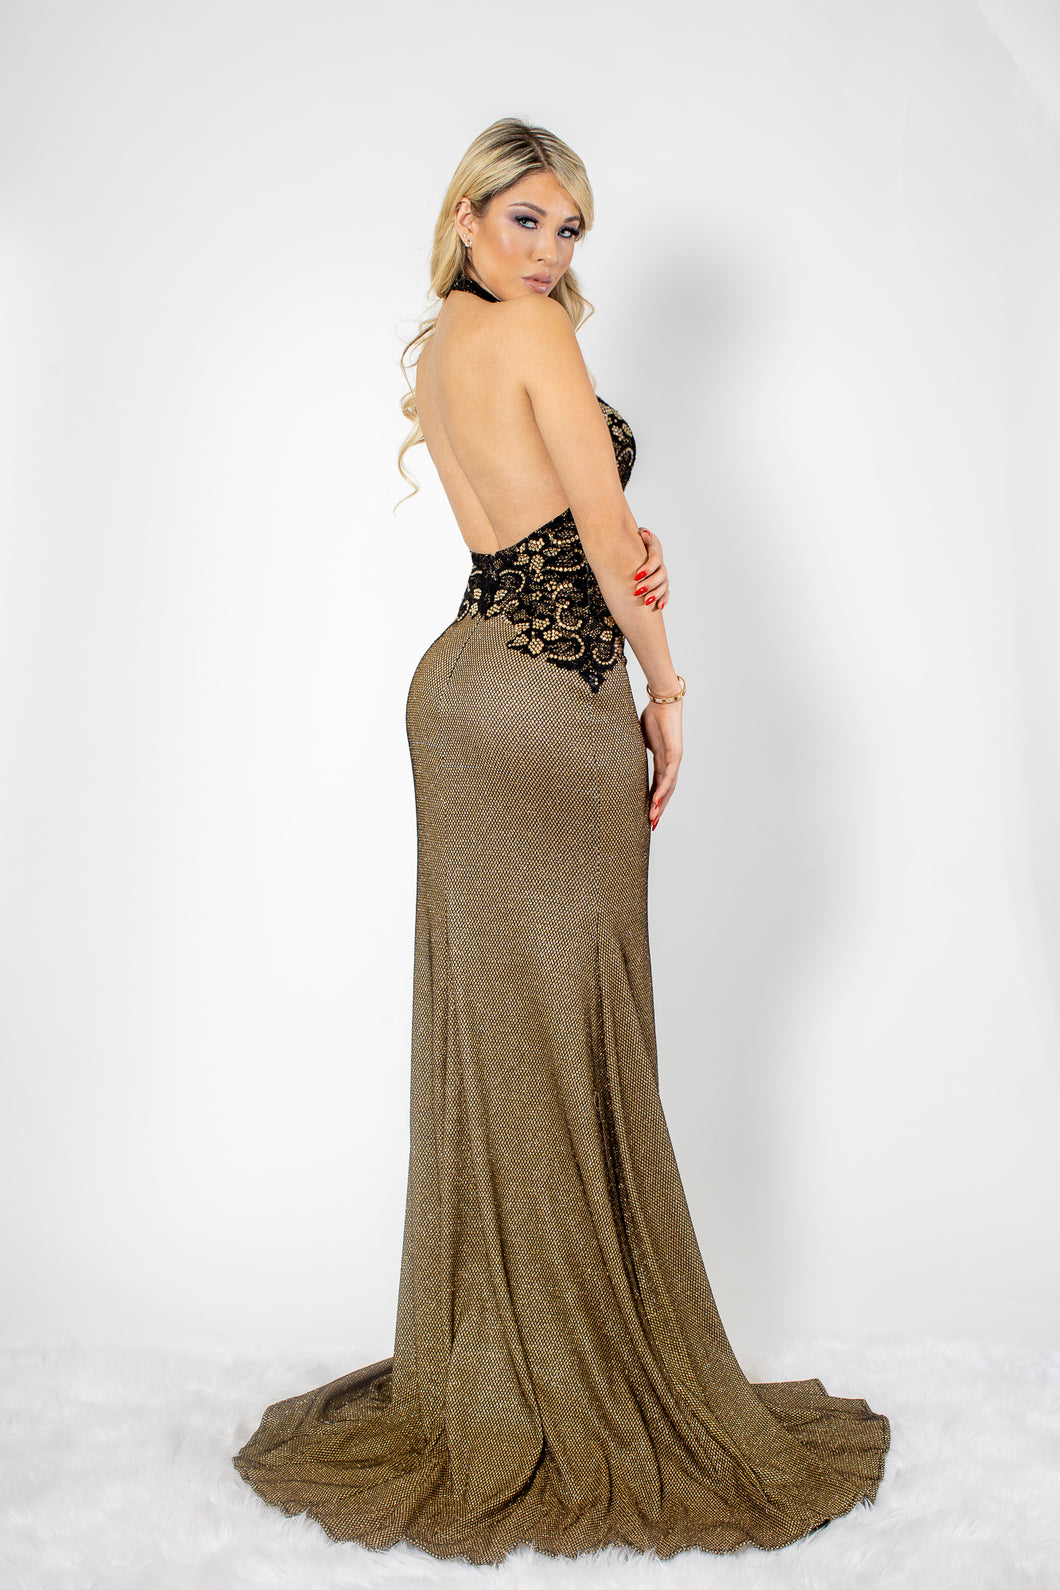 Lola Gold and Black with Gold Crystal Long Dress - BACCIO Couture